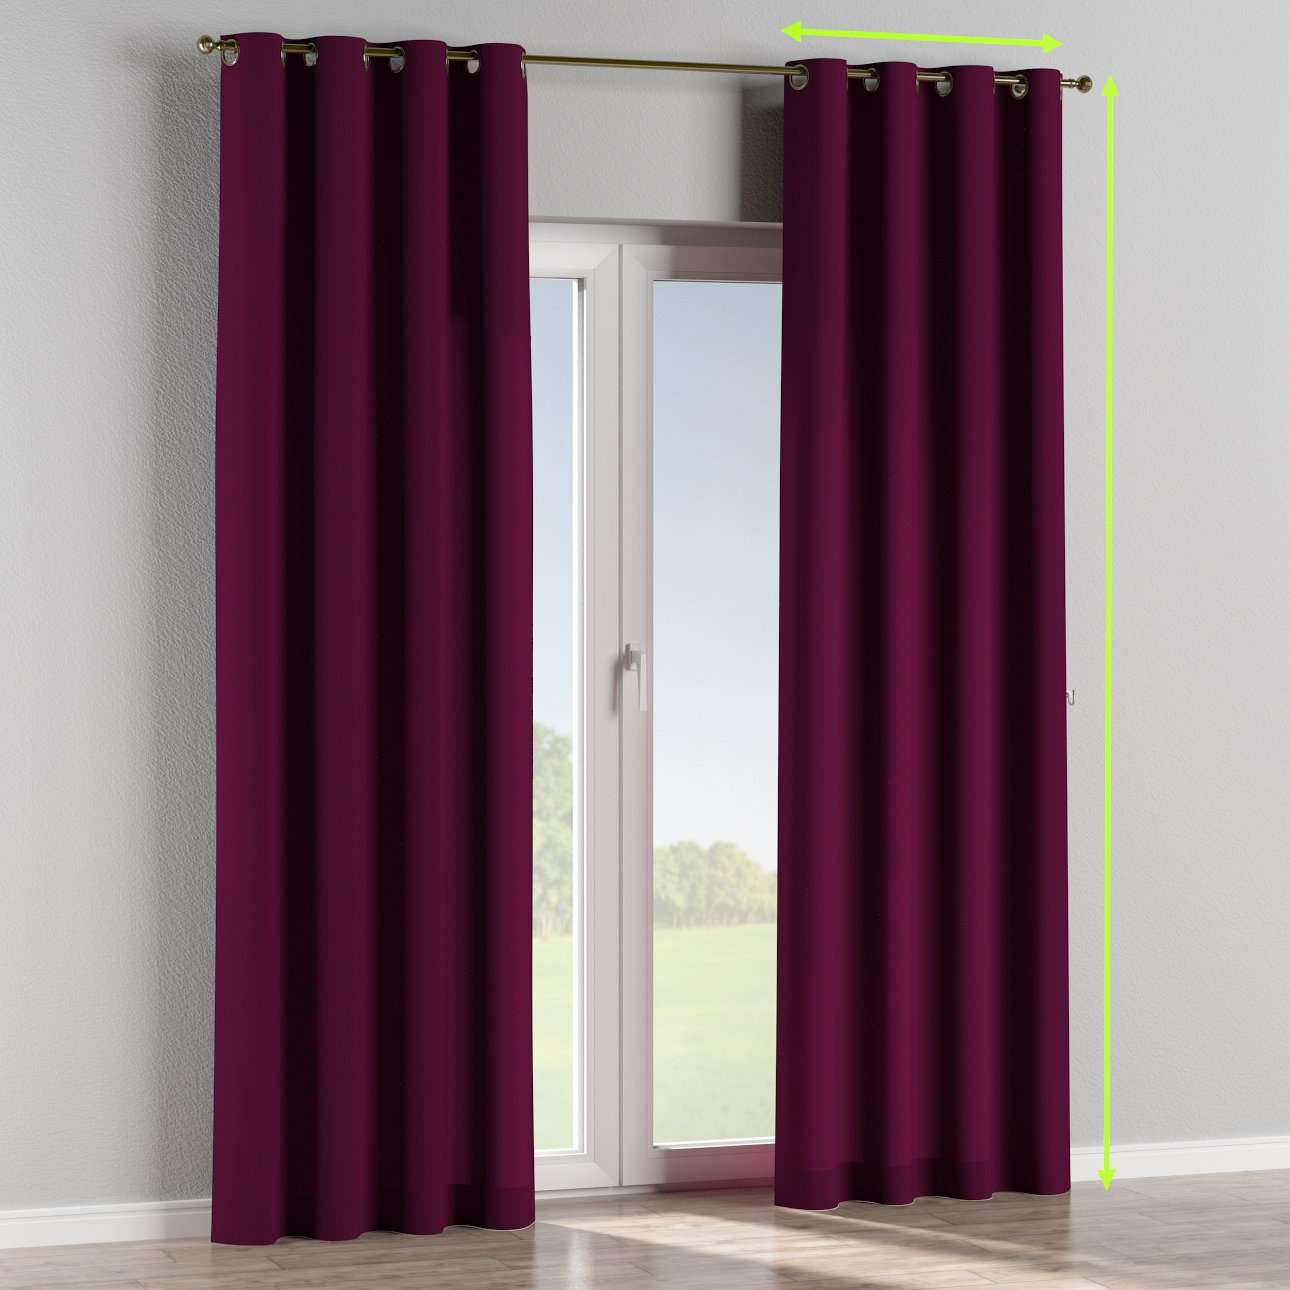 Eyelet curtains in collection Chenille, fabric: 702-12